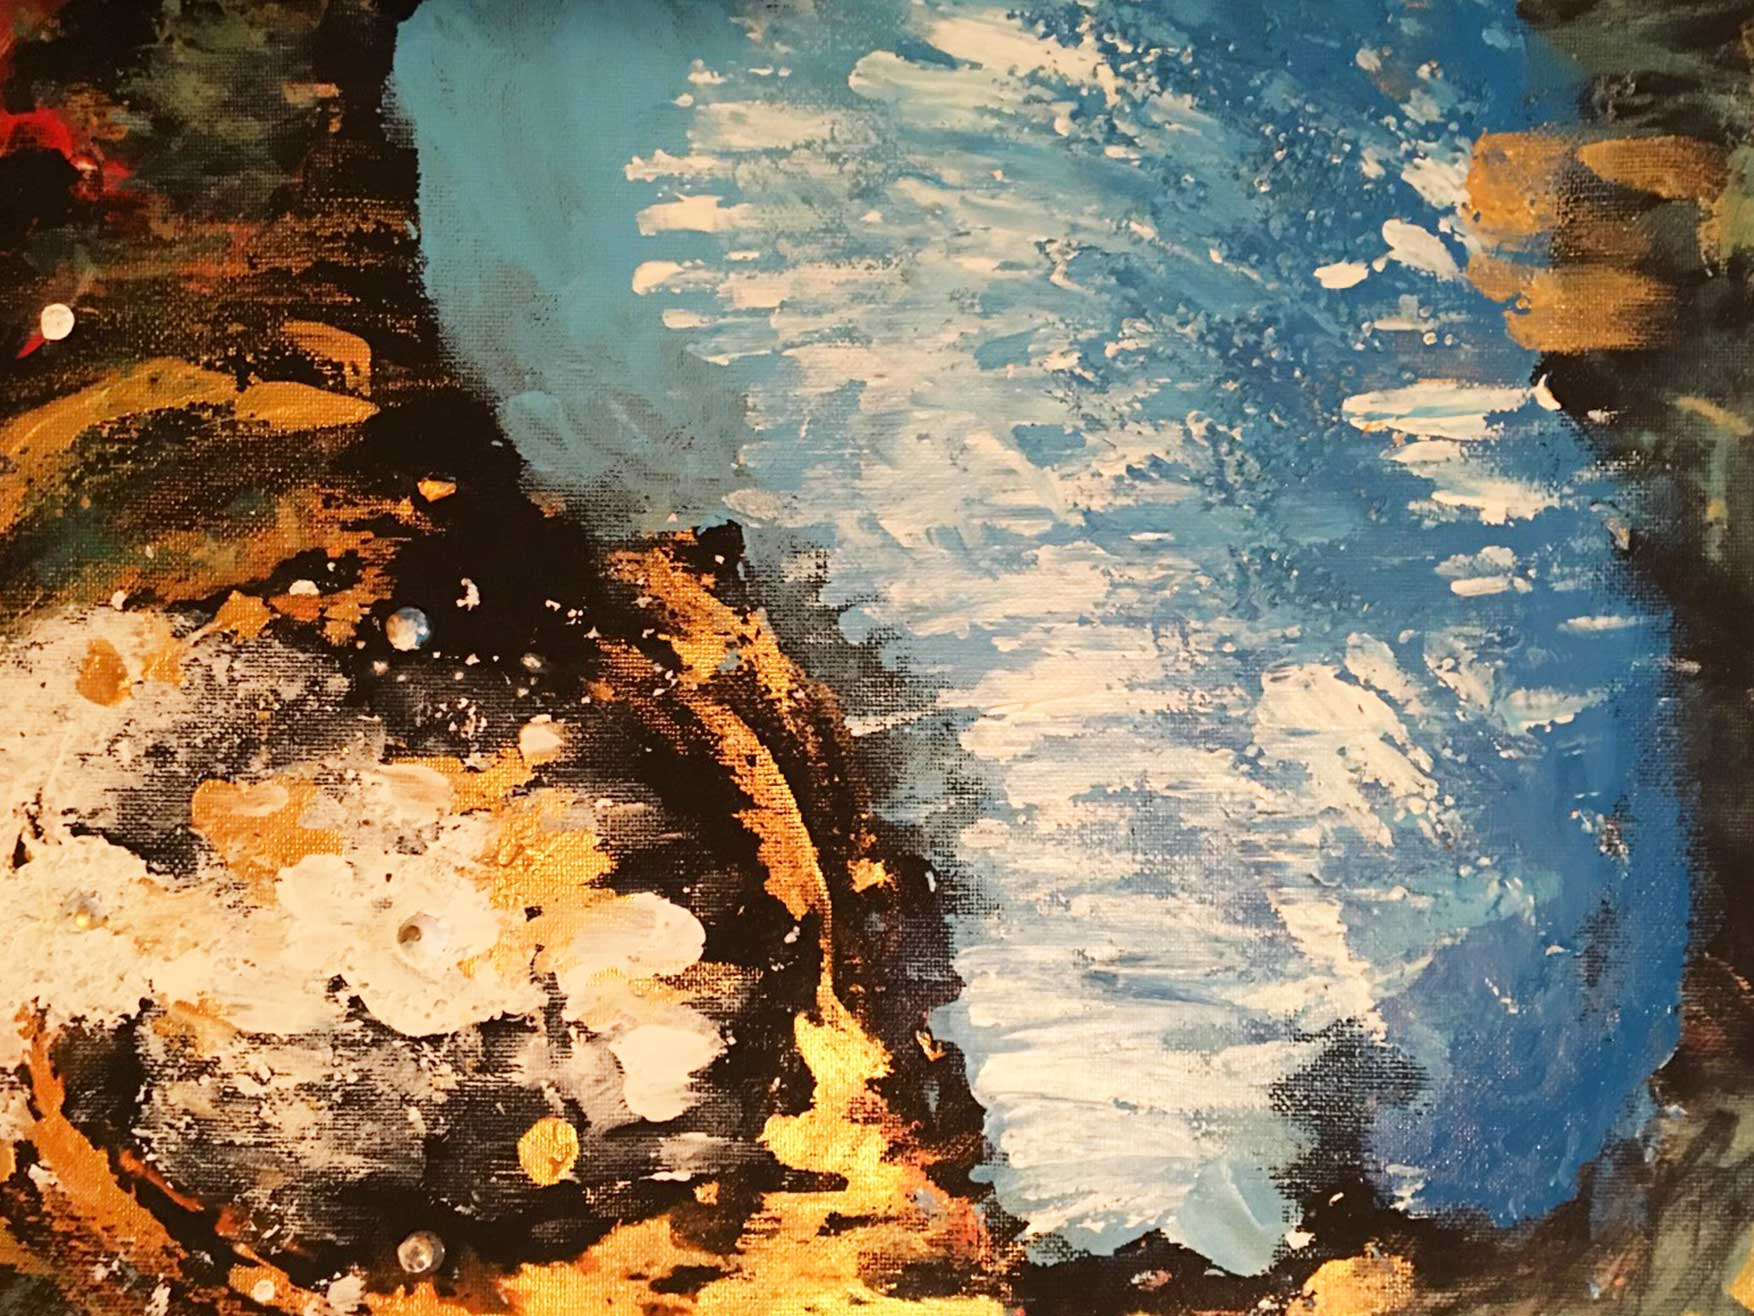 Perceptual Reflections is a landscape oriented abstract that many people say looks down from the top of a cliff into an ocean inlet.